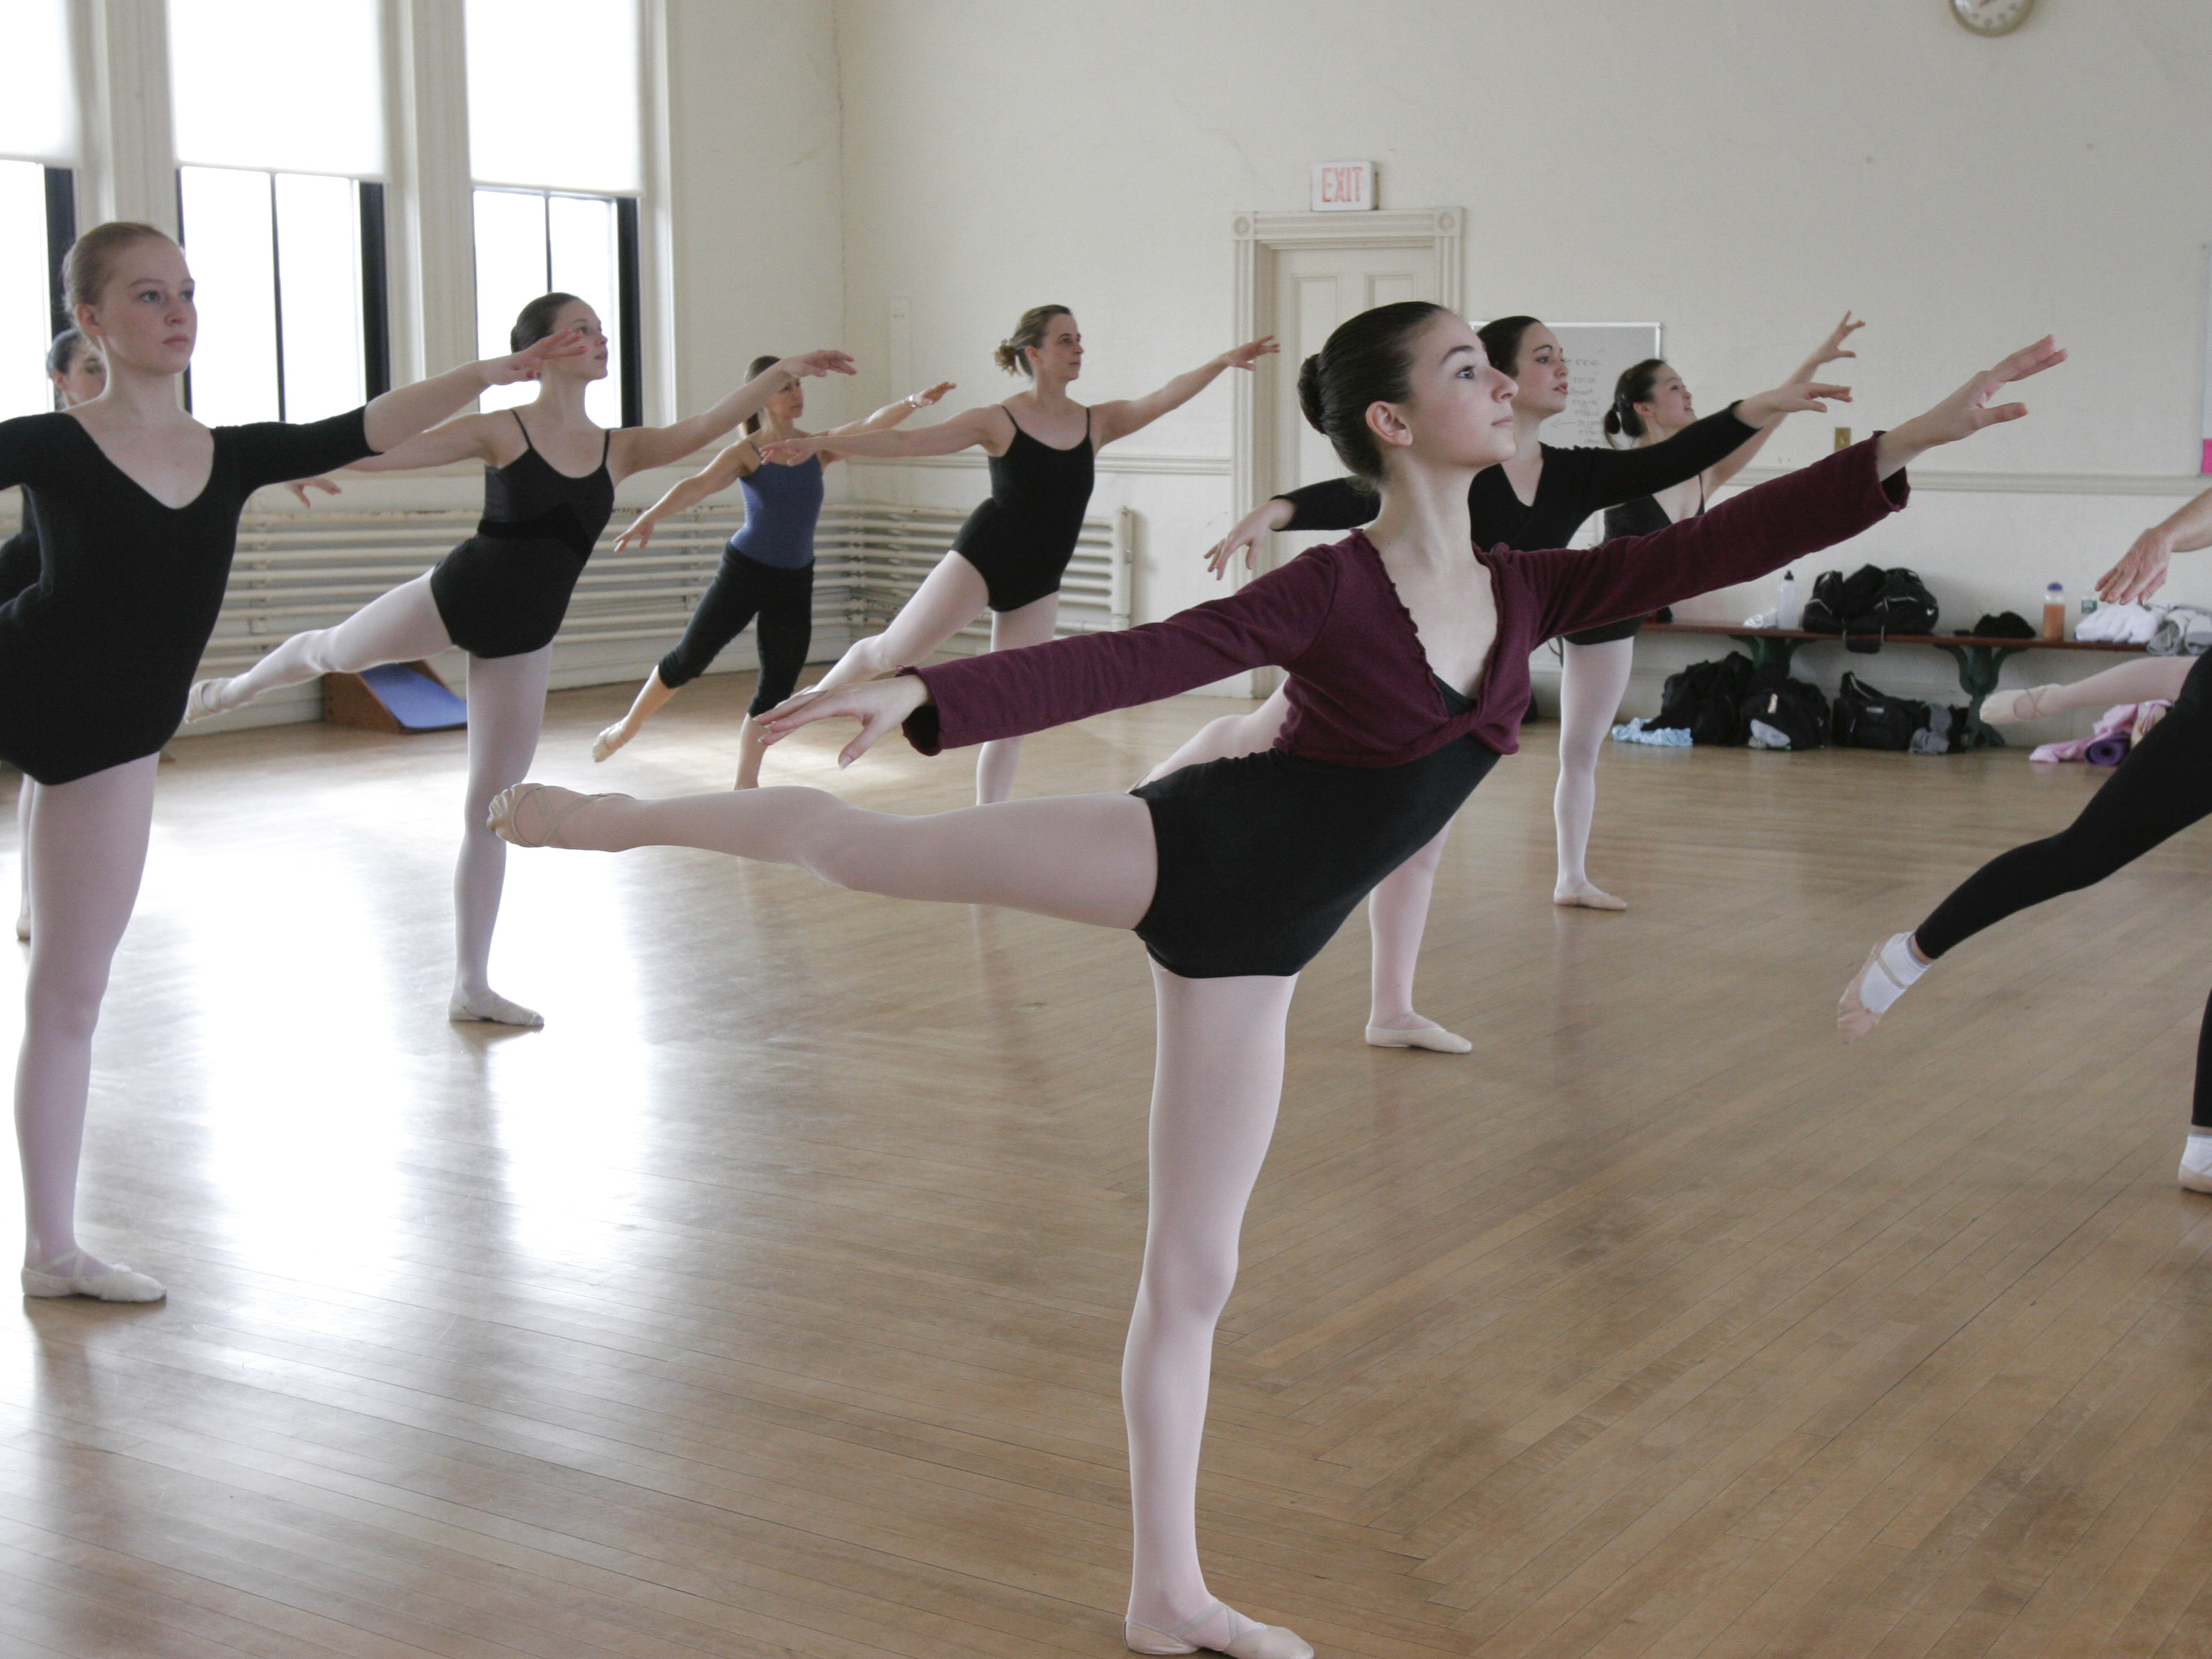 Dance studio full of ballet students pose in Arabesque